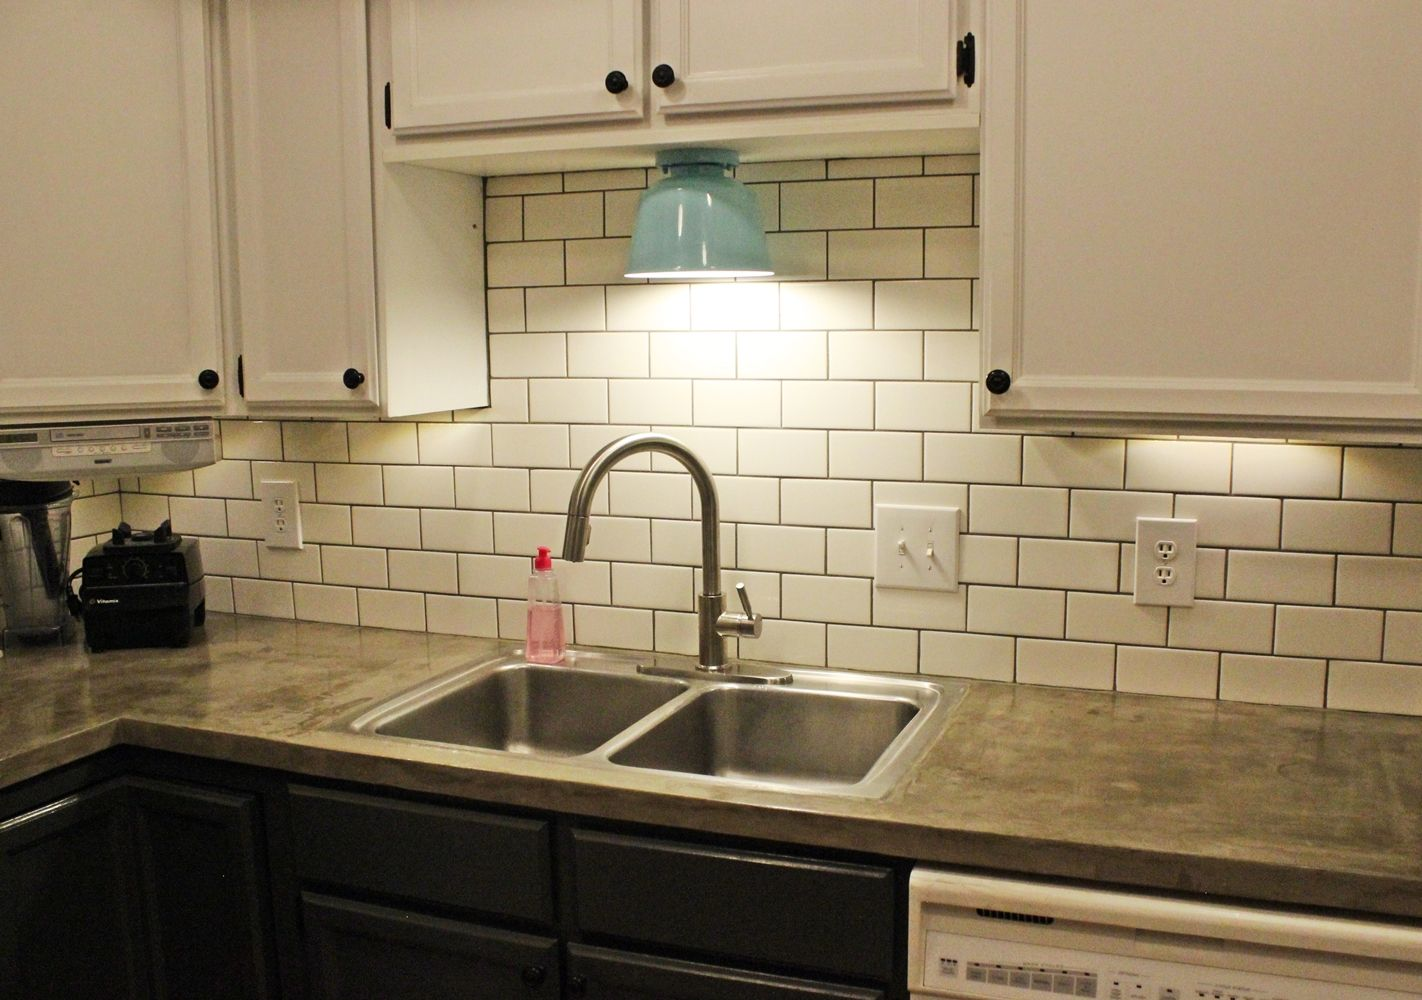 kitchen upgrade ideas grohe faucet cartridge replacement home improvements you can refresh your space with